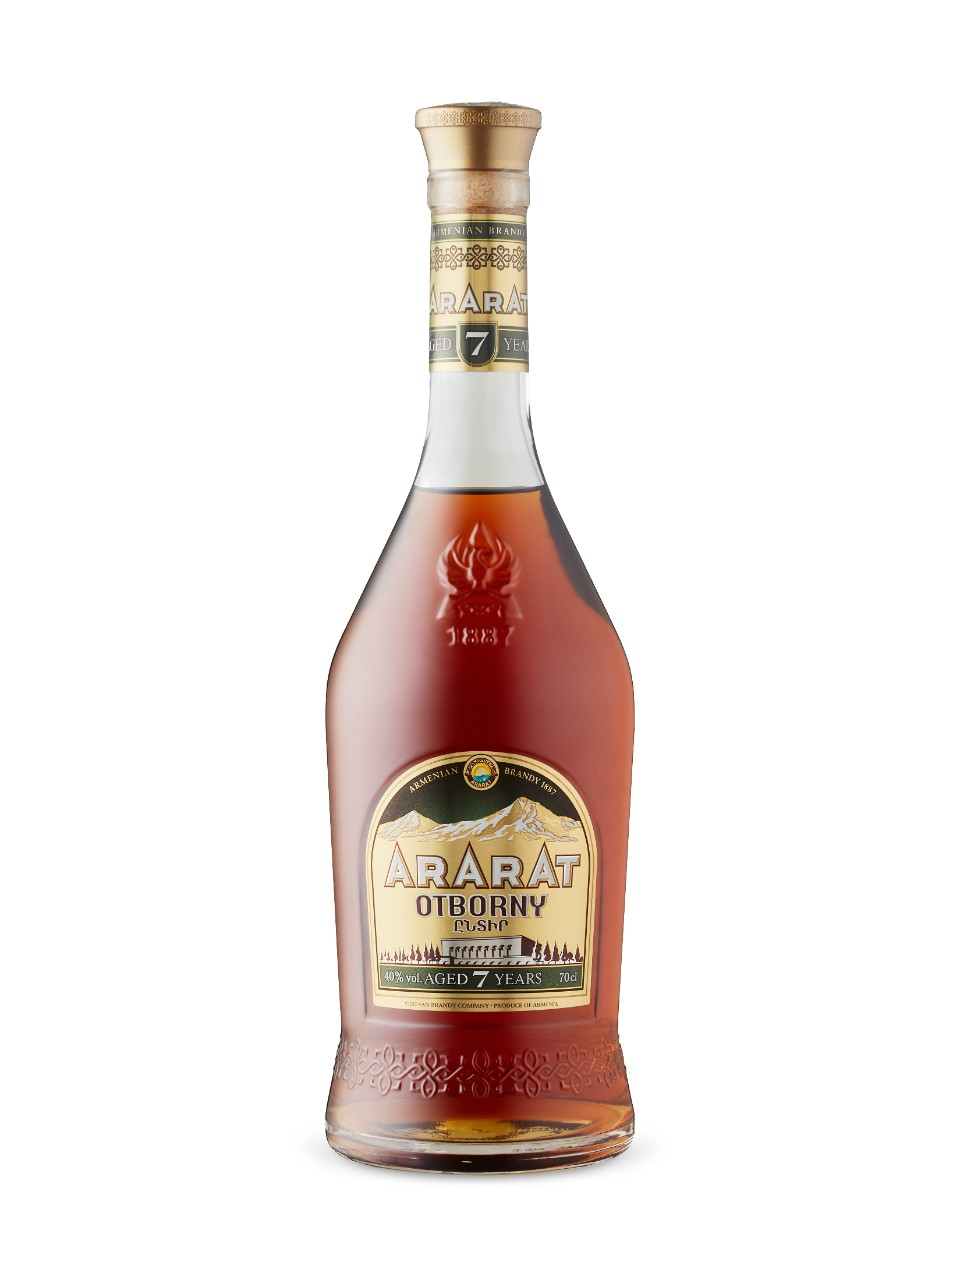 Ararat Otborny 7 Year Old Brandy from LCBO